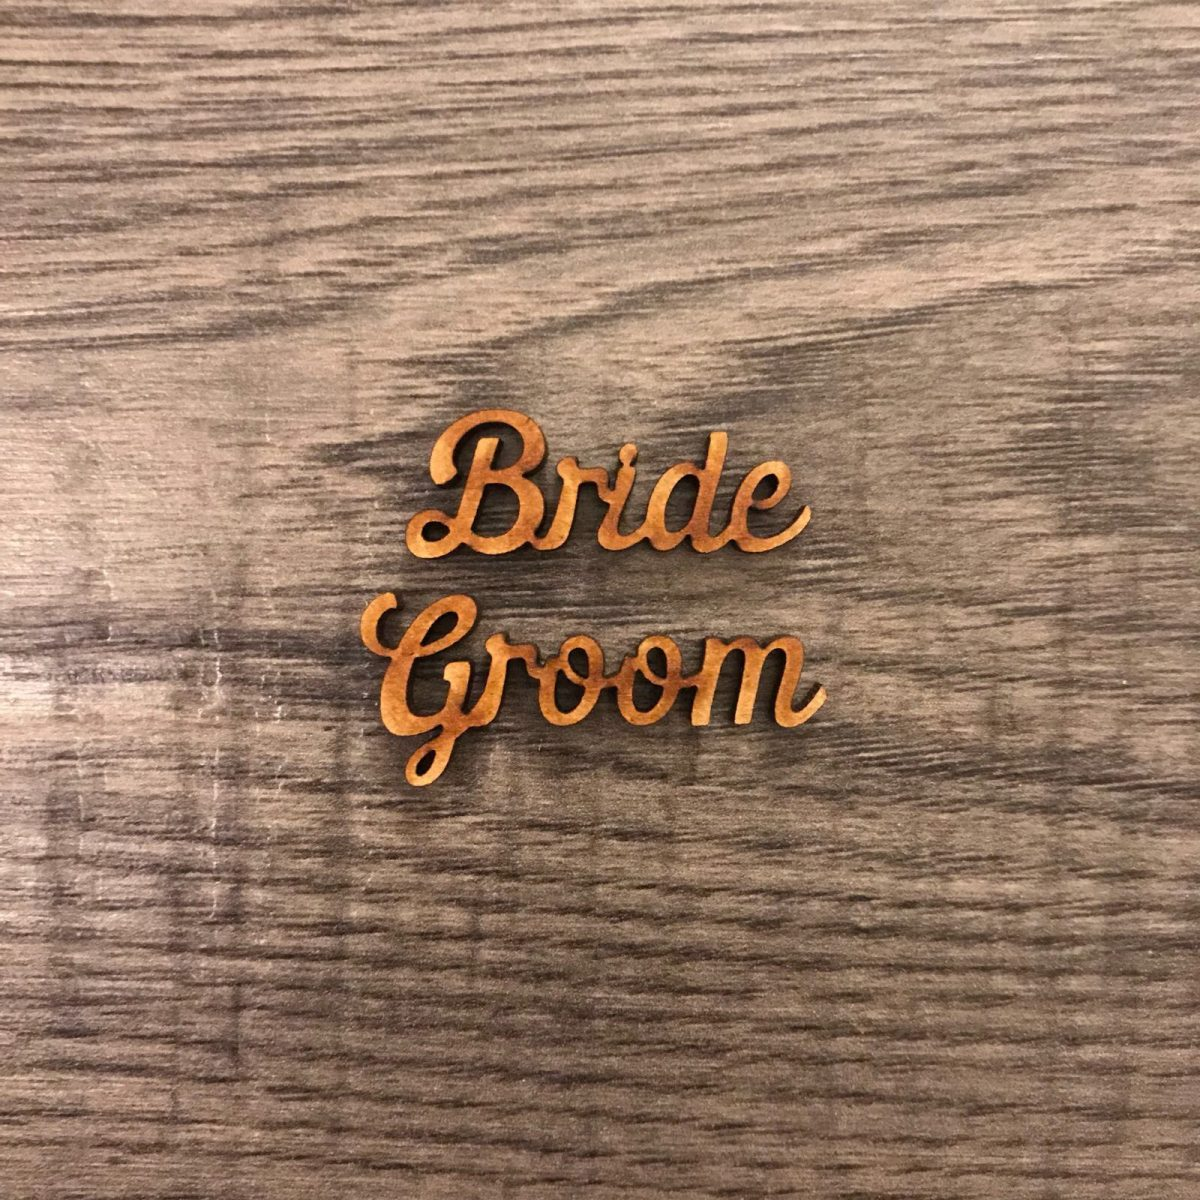 Extra Small Wooden Name